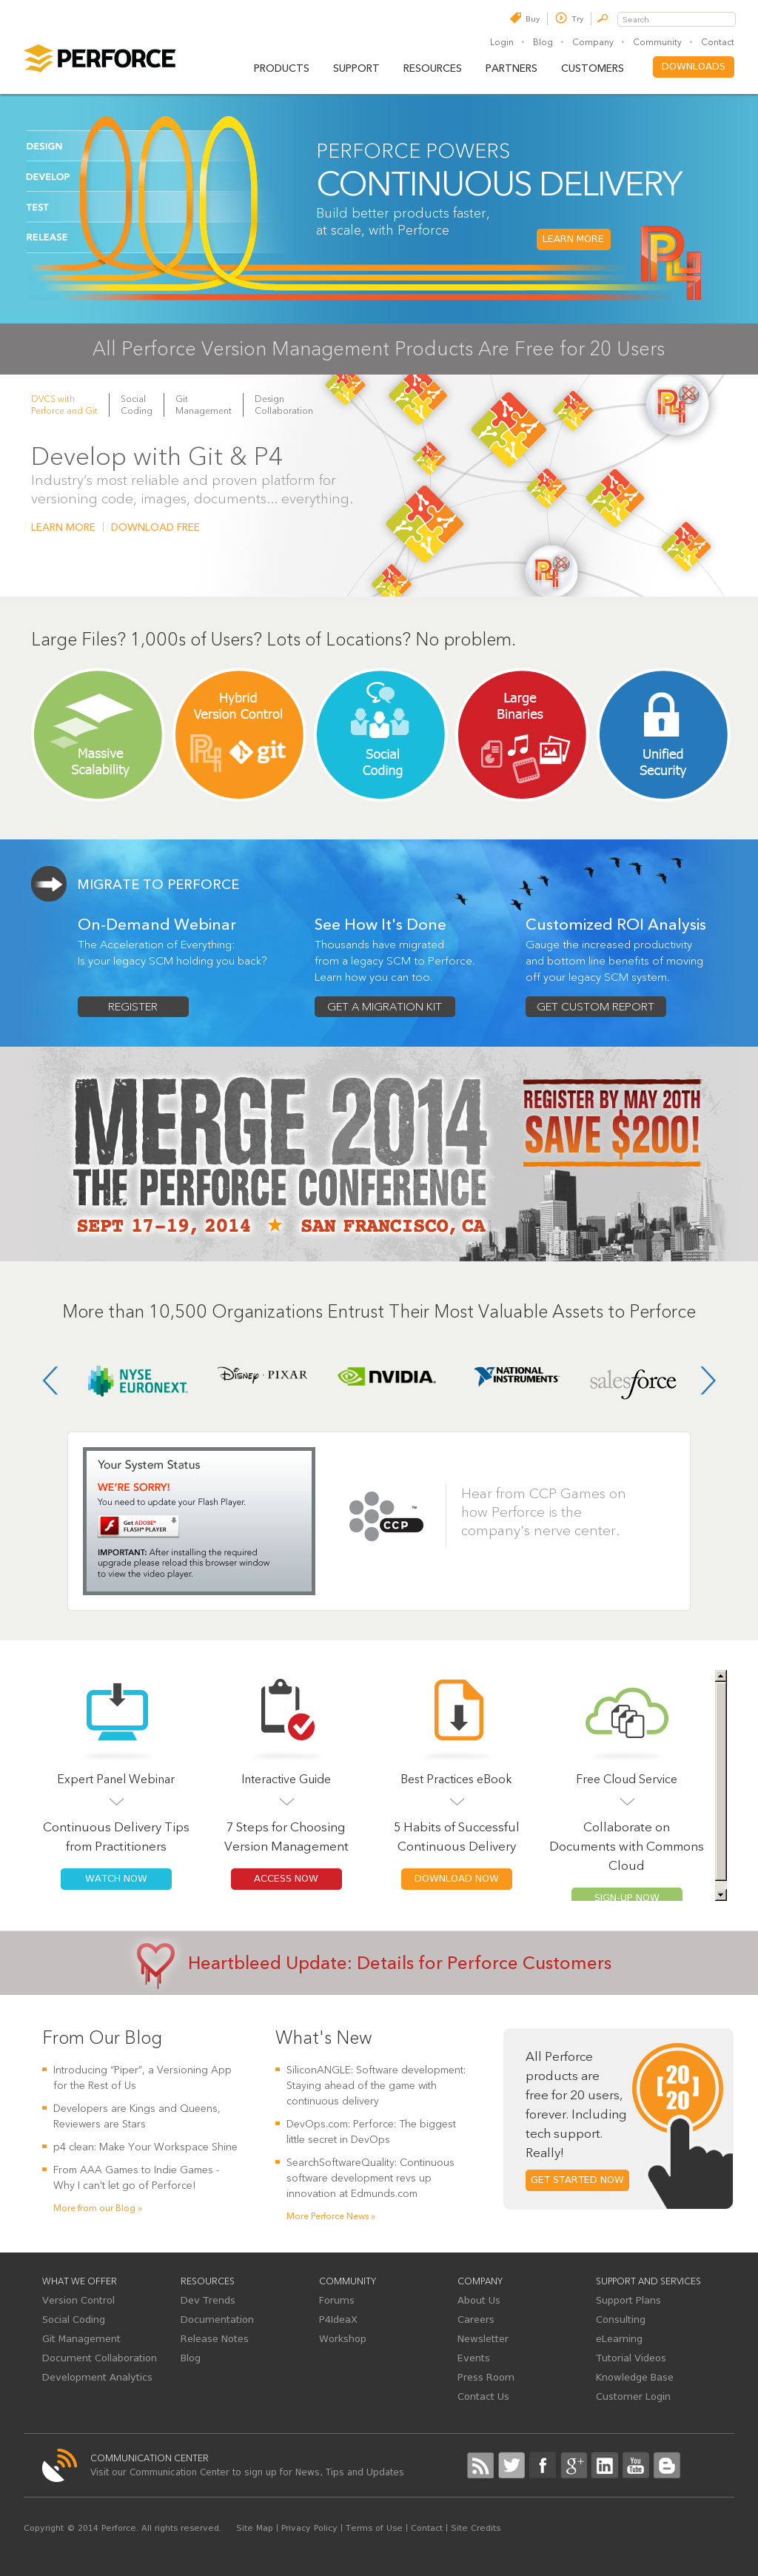 Perforce Competitors, Revenue and Employees - Owler Company